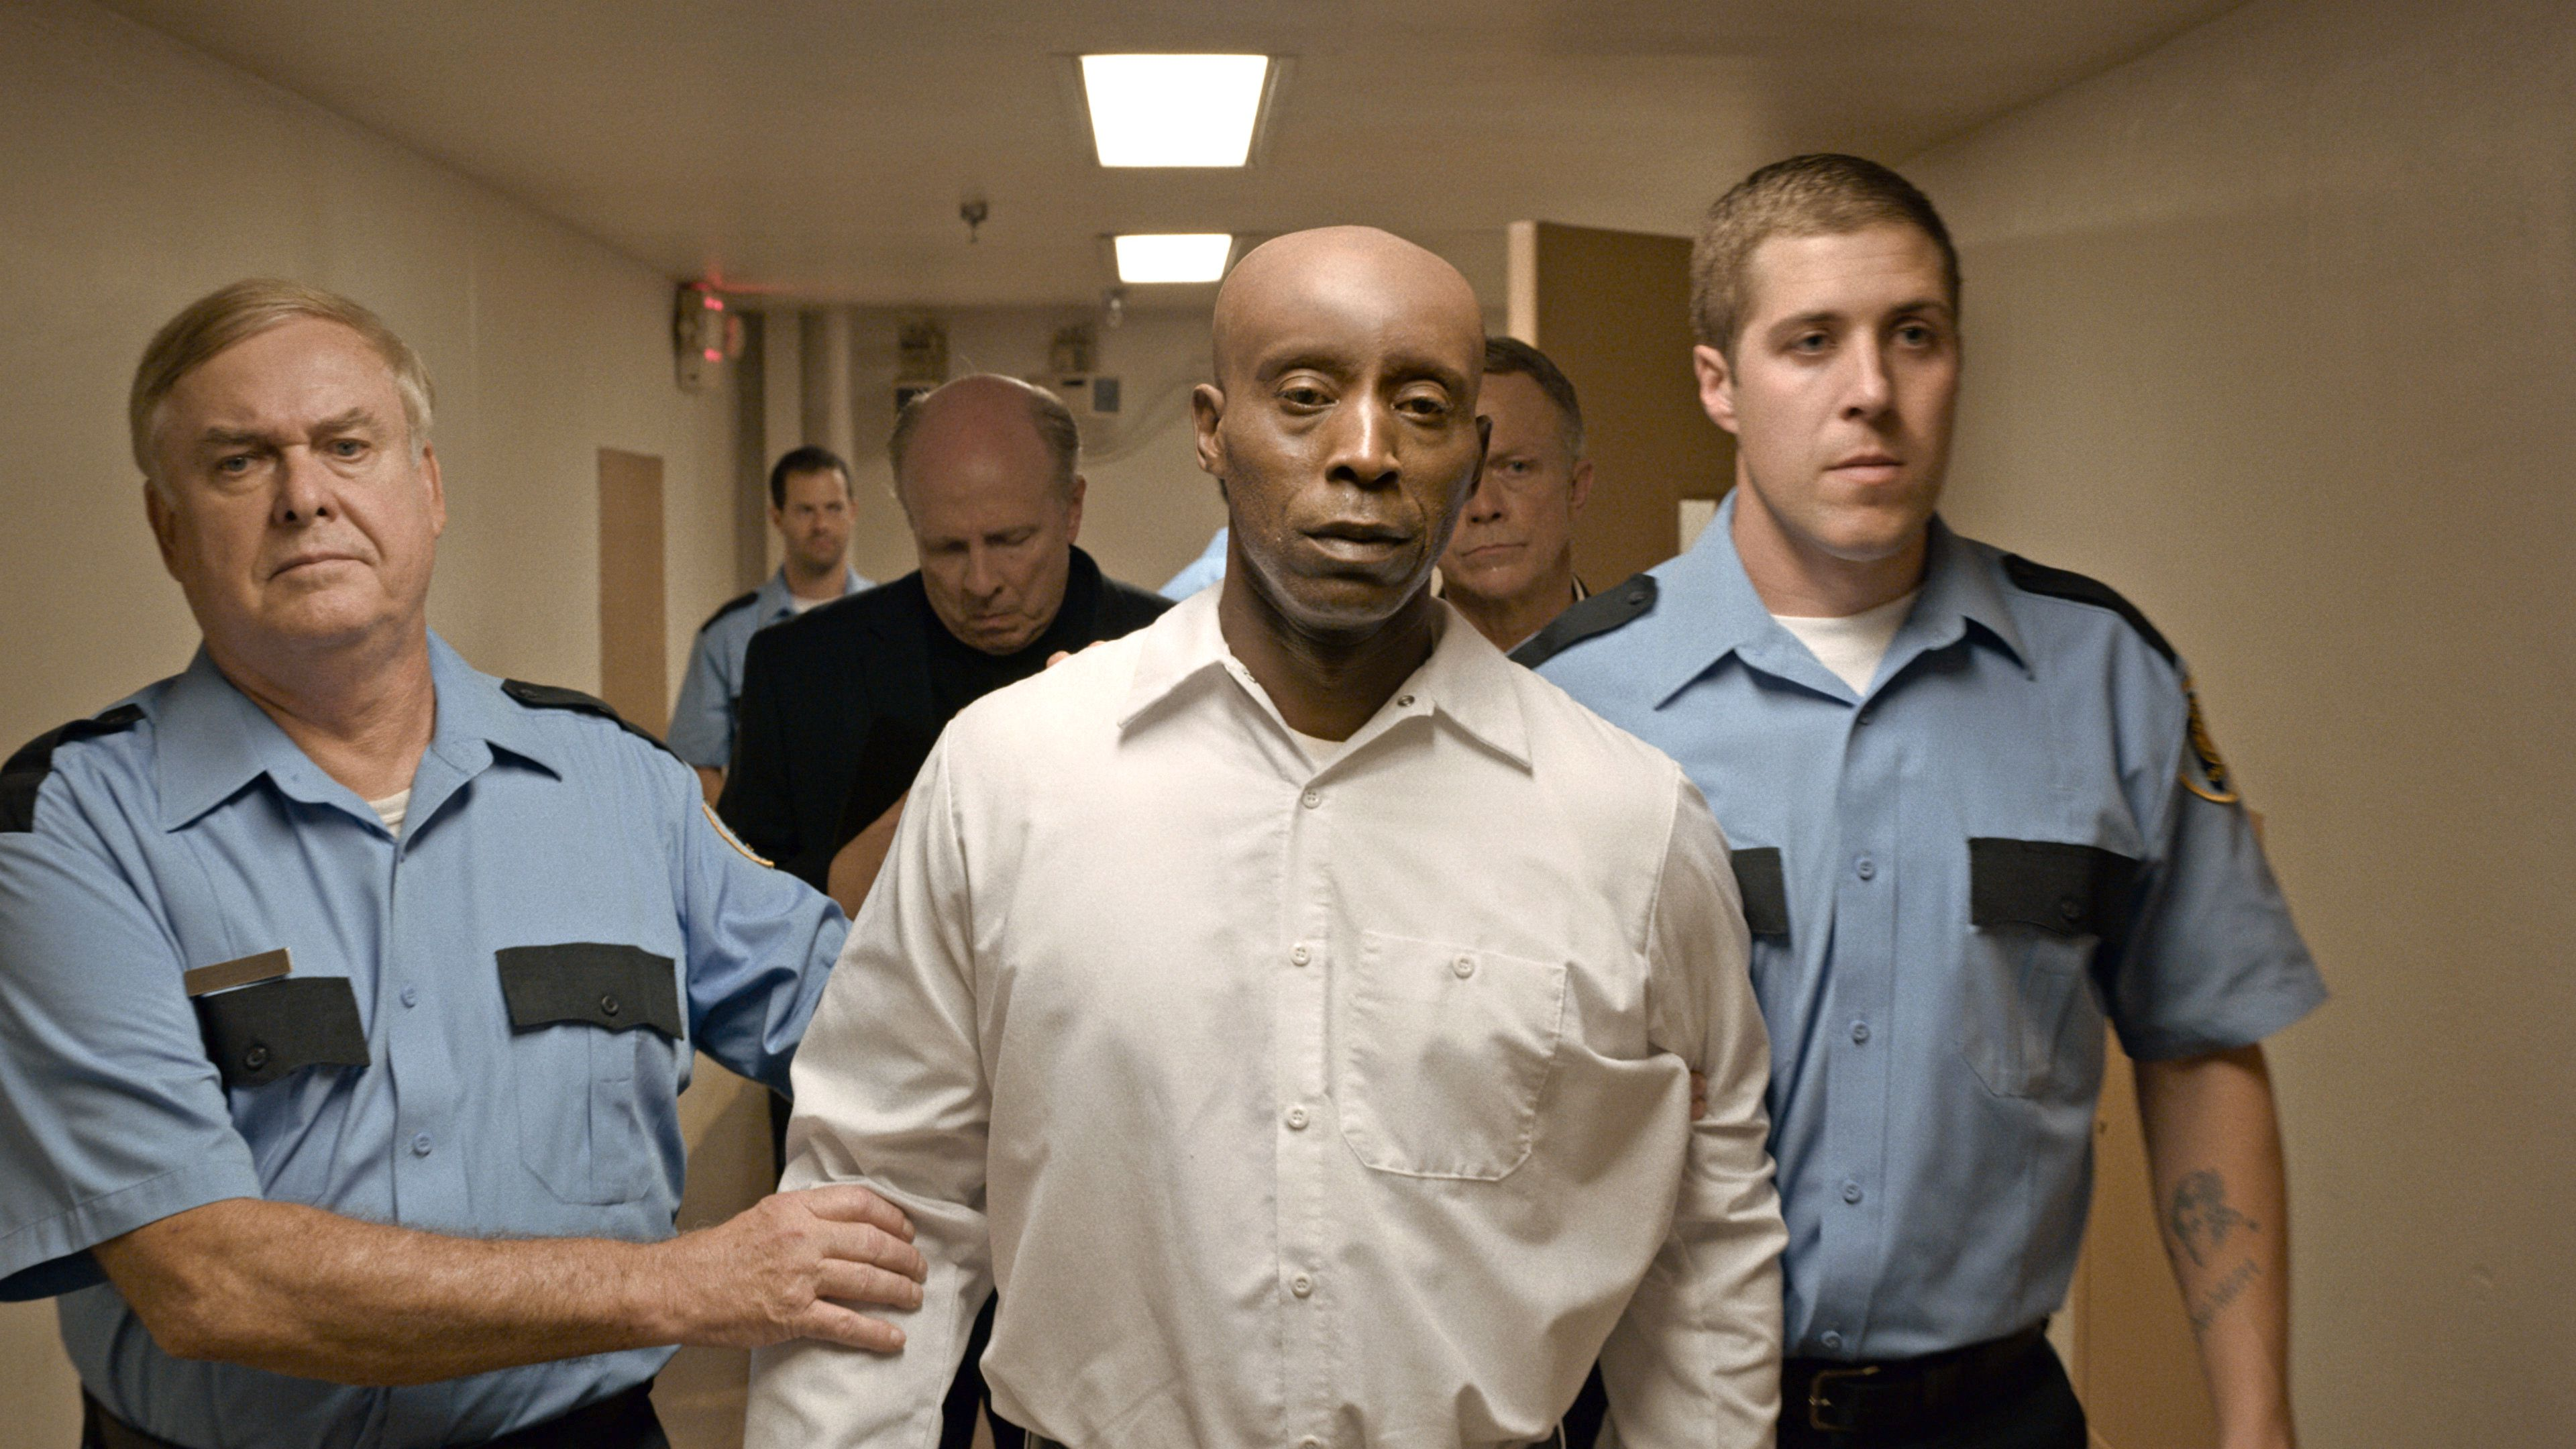 How Just Mercy S Rob Morgan Stole The Show From Michael B Jordan And Jamie Foxx And Why He Suffers From Awards Ptsd The Globe And Mail